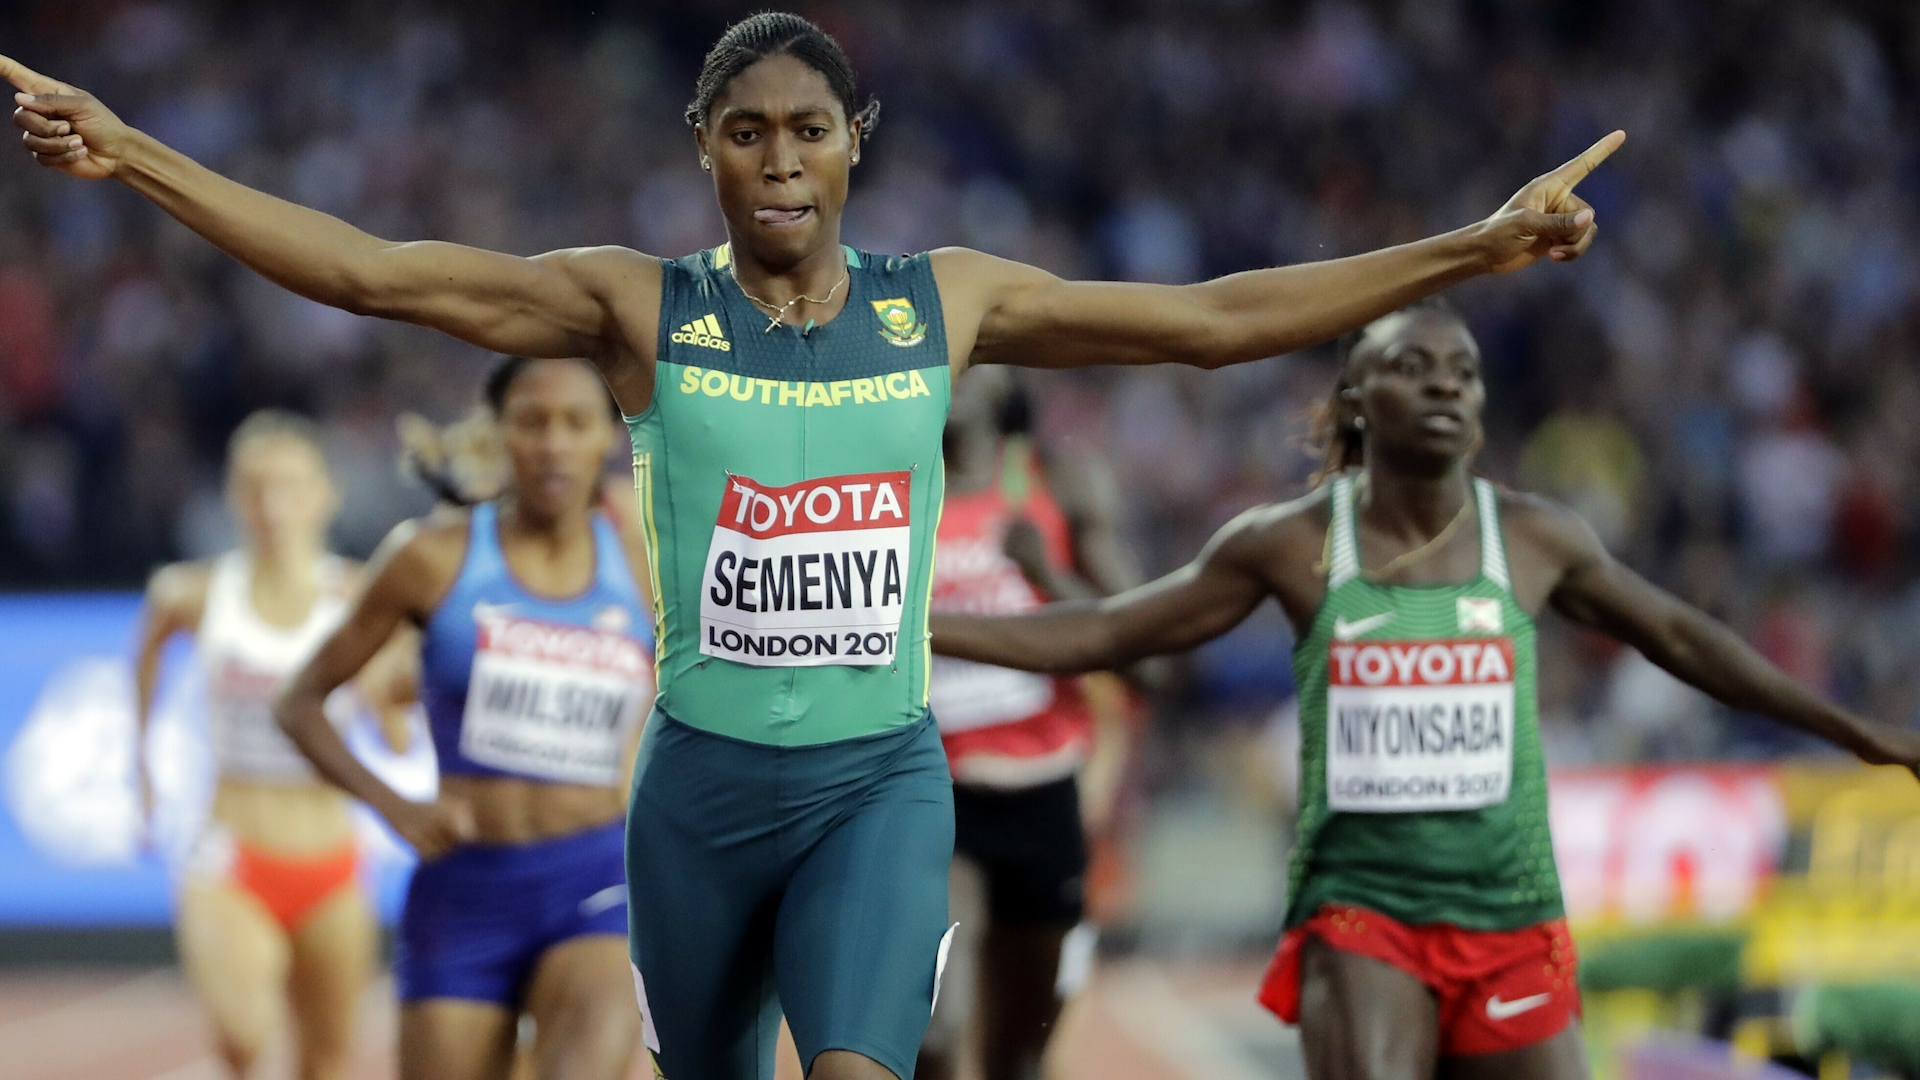 We celebrated Michael Phelps's genetic differences. Why punish Caster Semenya for hers?